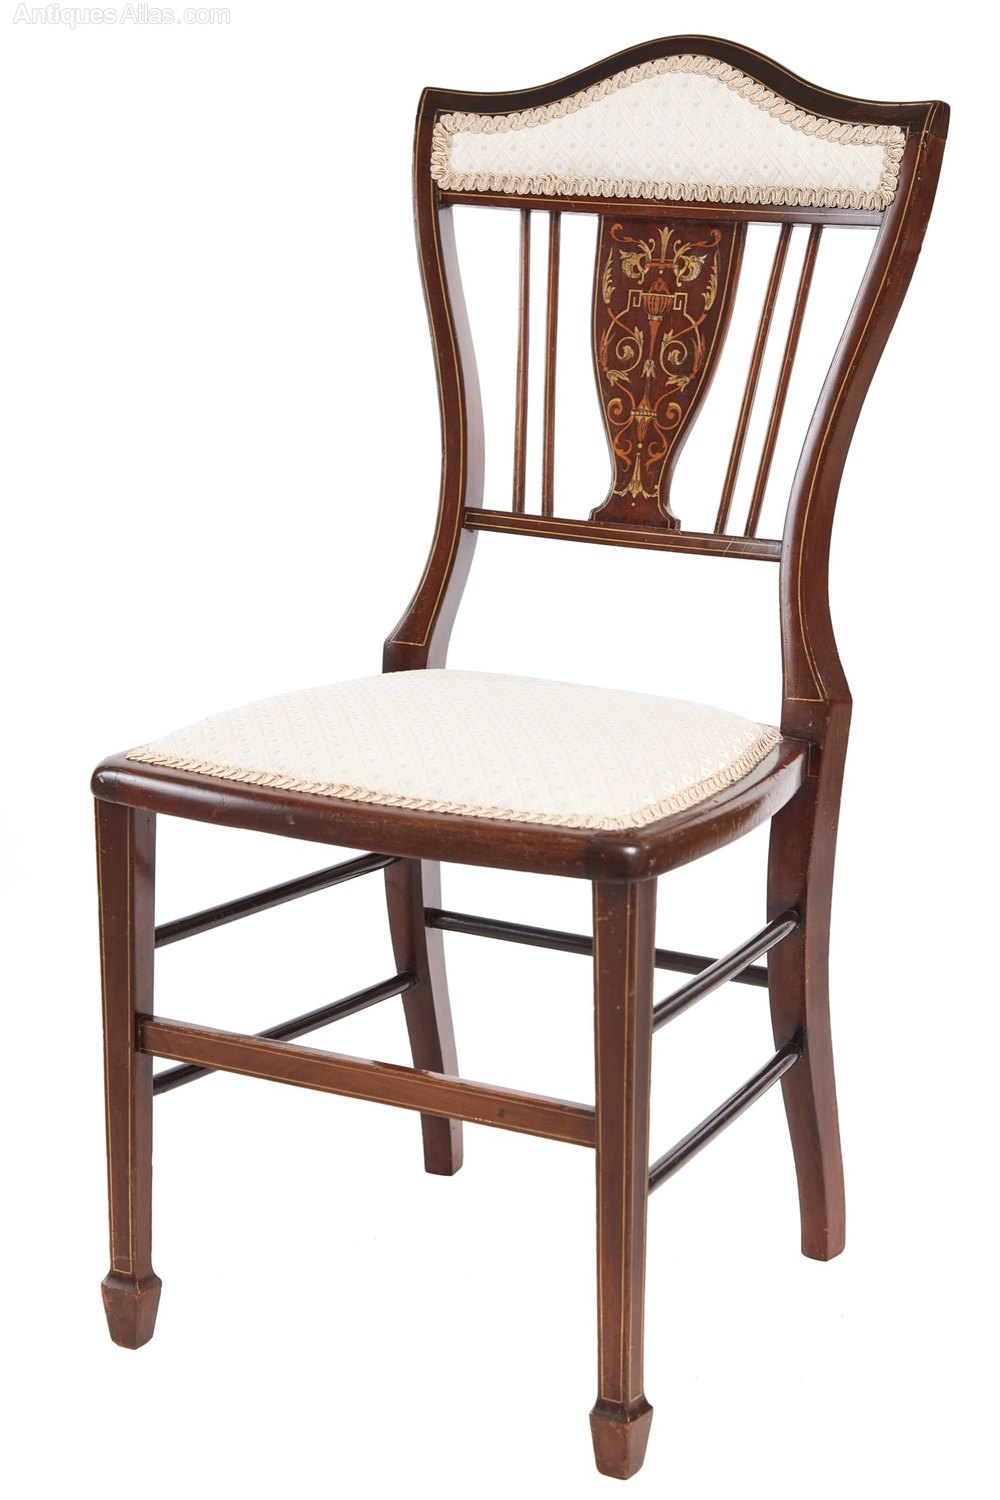 Edwardian Inlaid Bedroom Chair Antiques Atlas